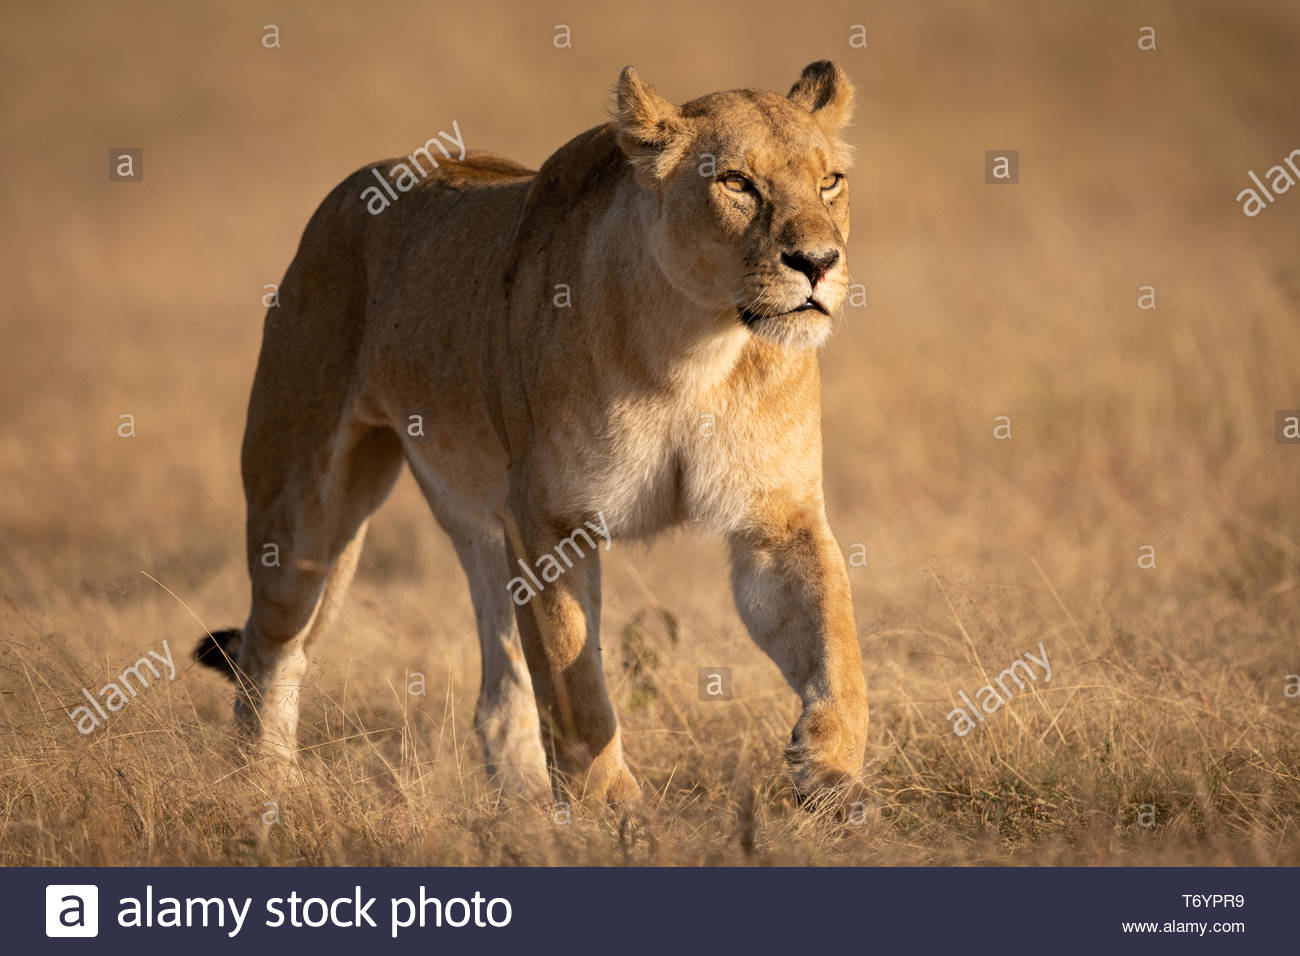 Lioness walking on short grass looking ahead - Stock Image